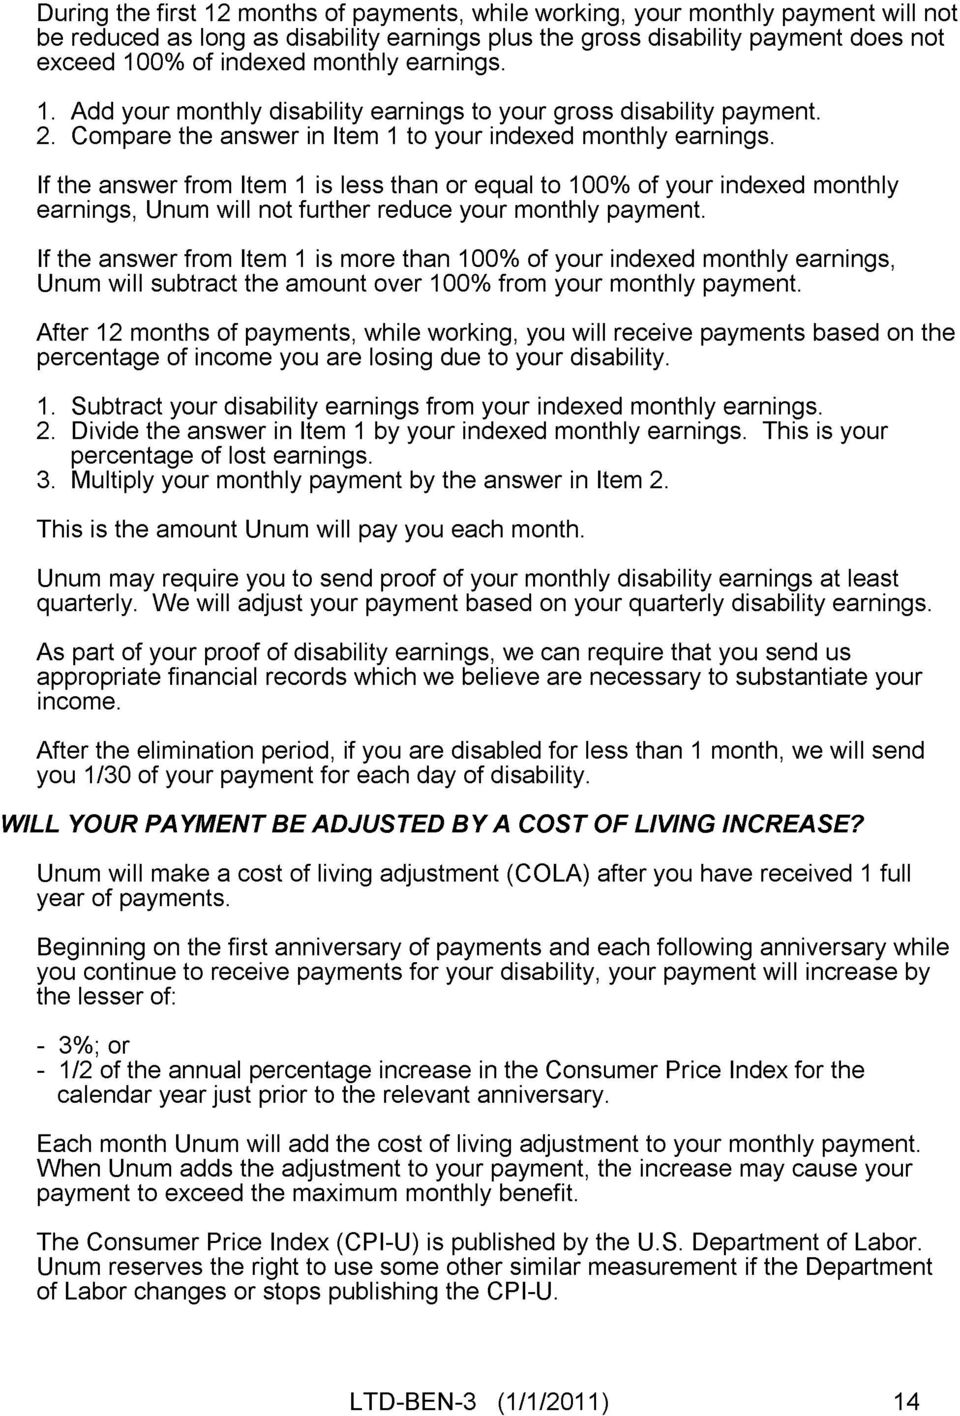 If the answer from Item 1 is less than or equal to 100% of your indexed monthly earnings, Unum will not further reduce your monthly payment.